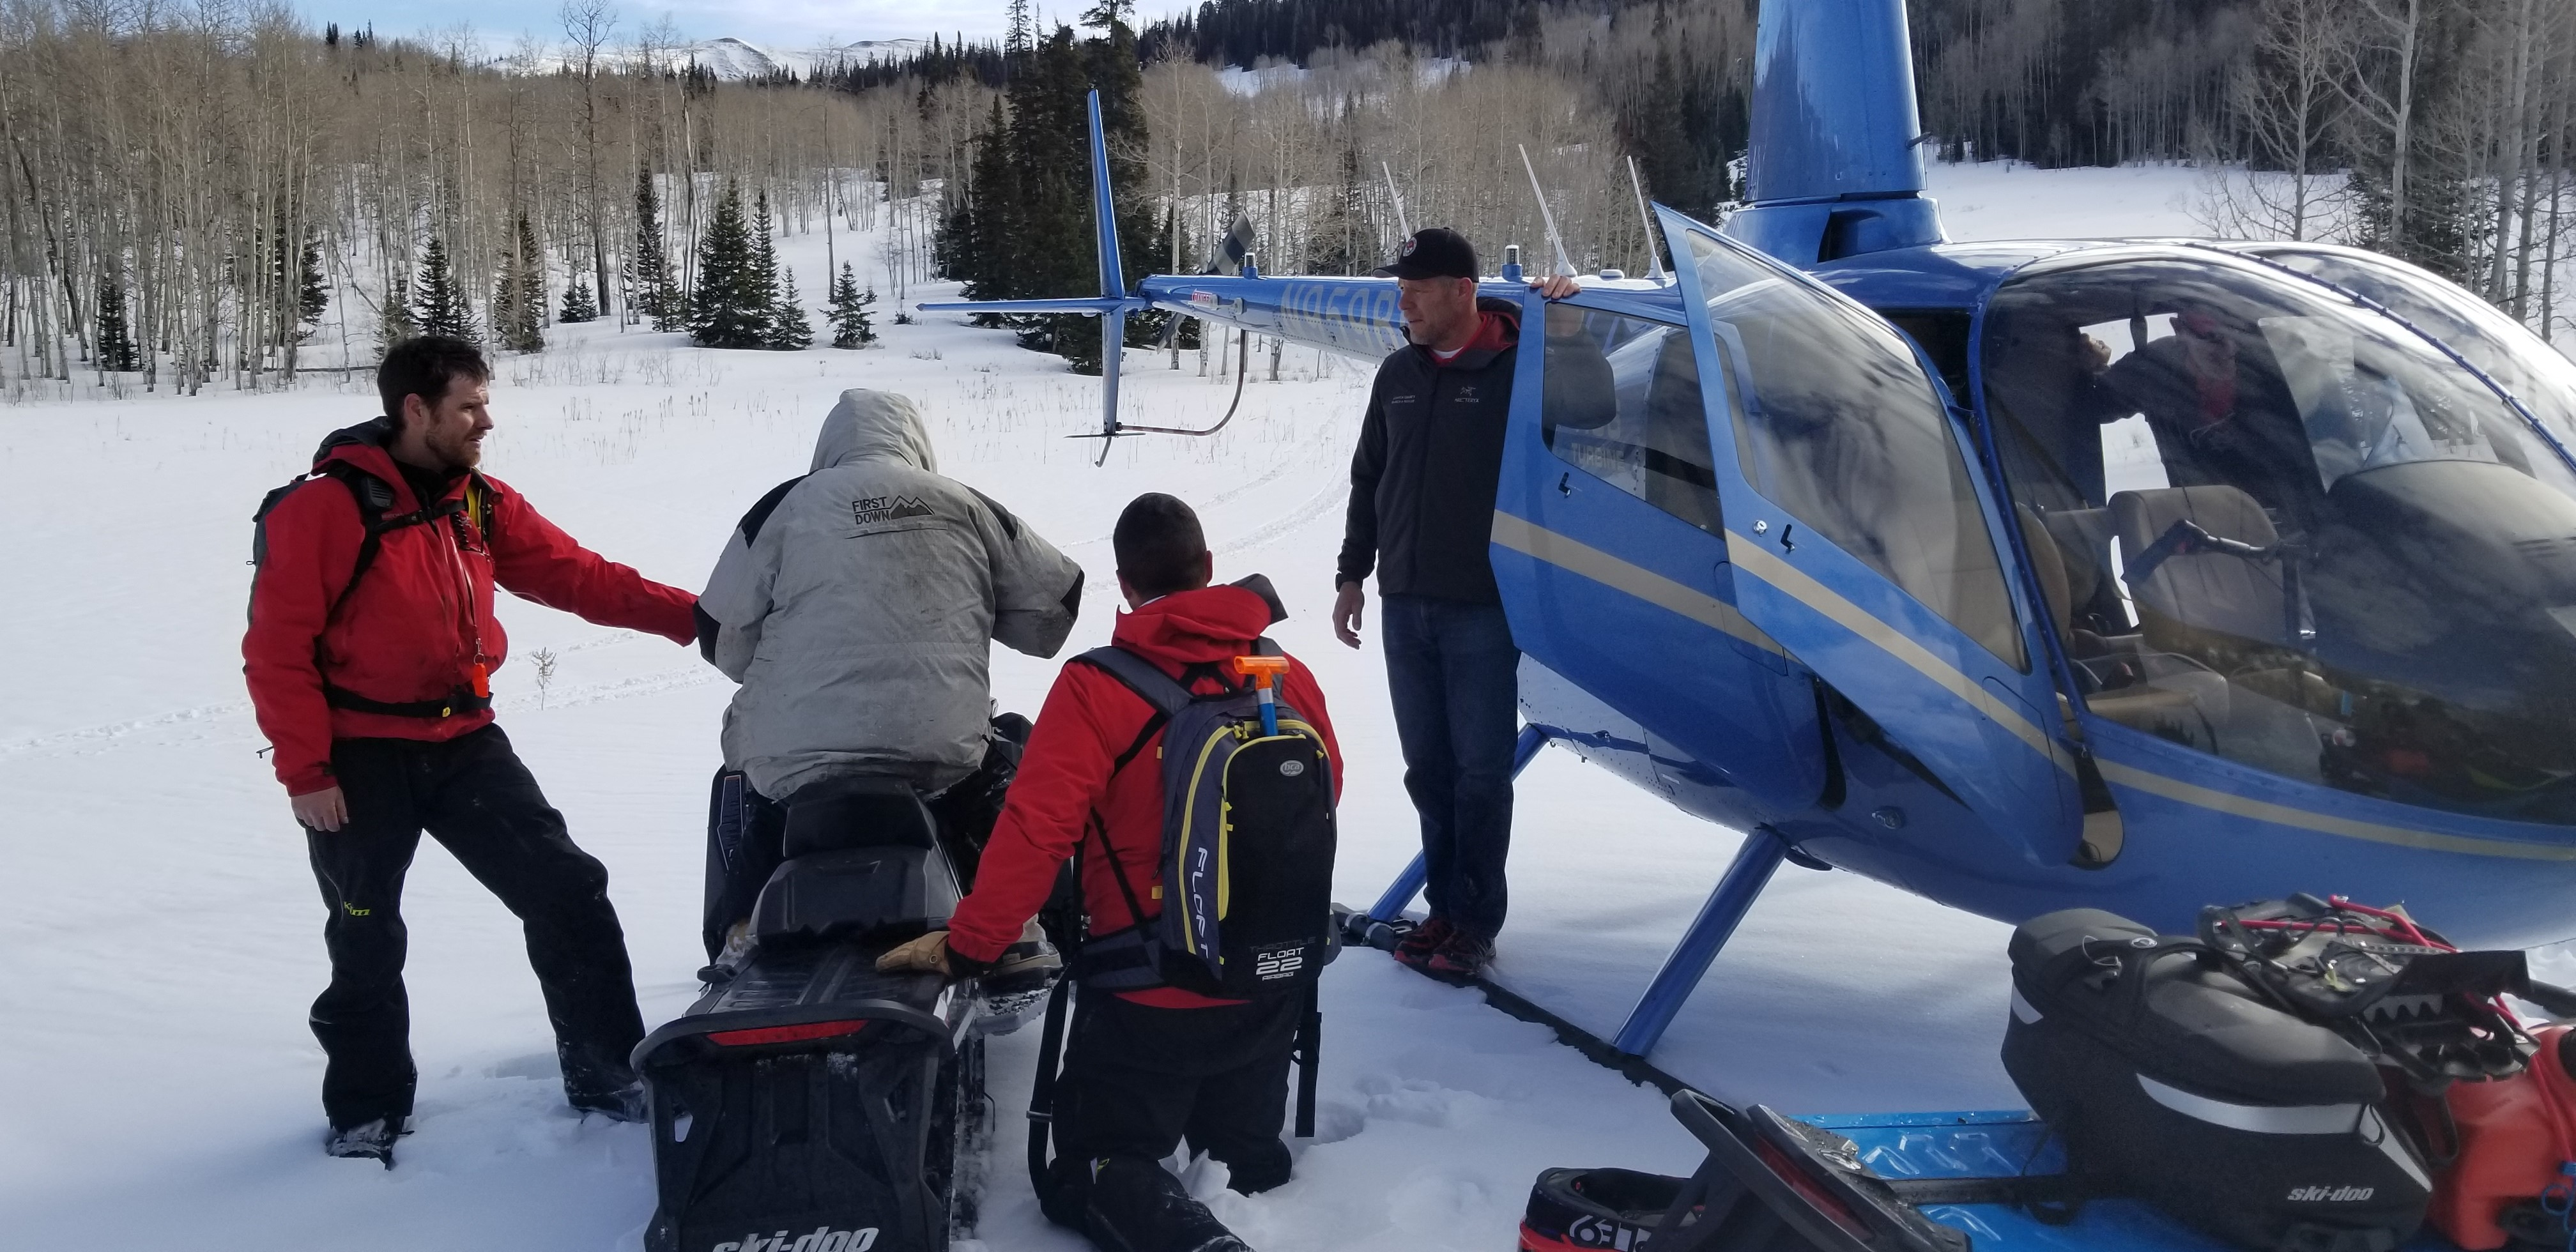 60-Year-old snowmobiler rescued after four nights stranded on Heber Mountain (Photo: Ginna Roe, KUTV)